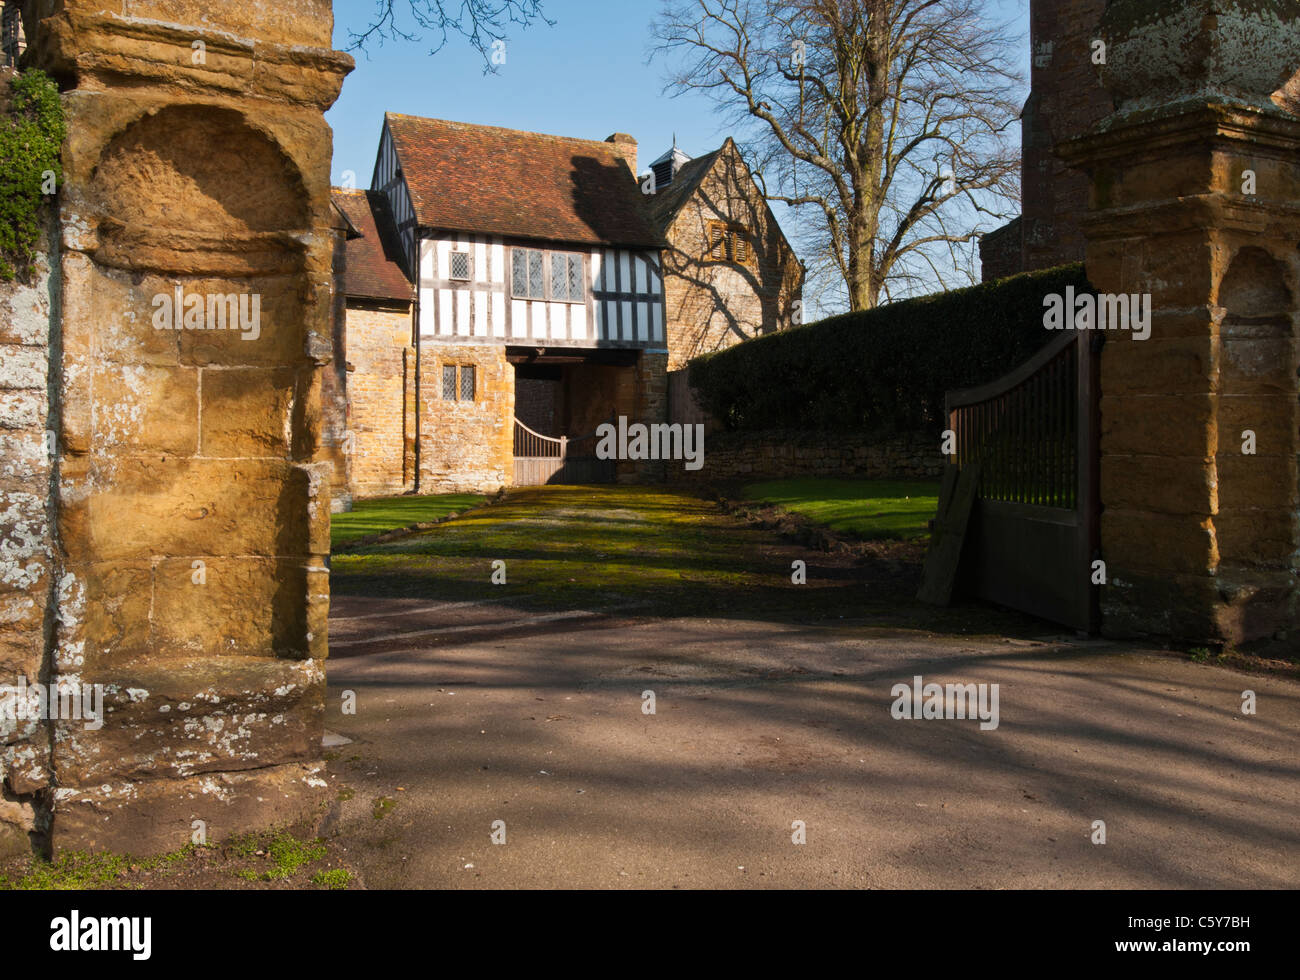 The Gatehouse of Ashby St Ledger's manor  was where the Gunpowder Plot of 1605 was hatched, Northamptonshire, - Stock Image